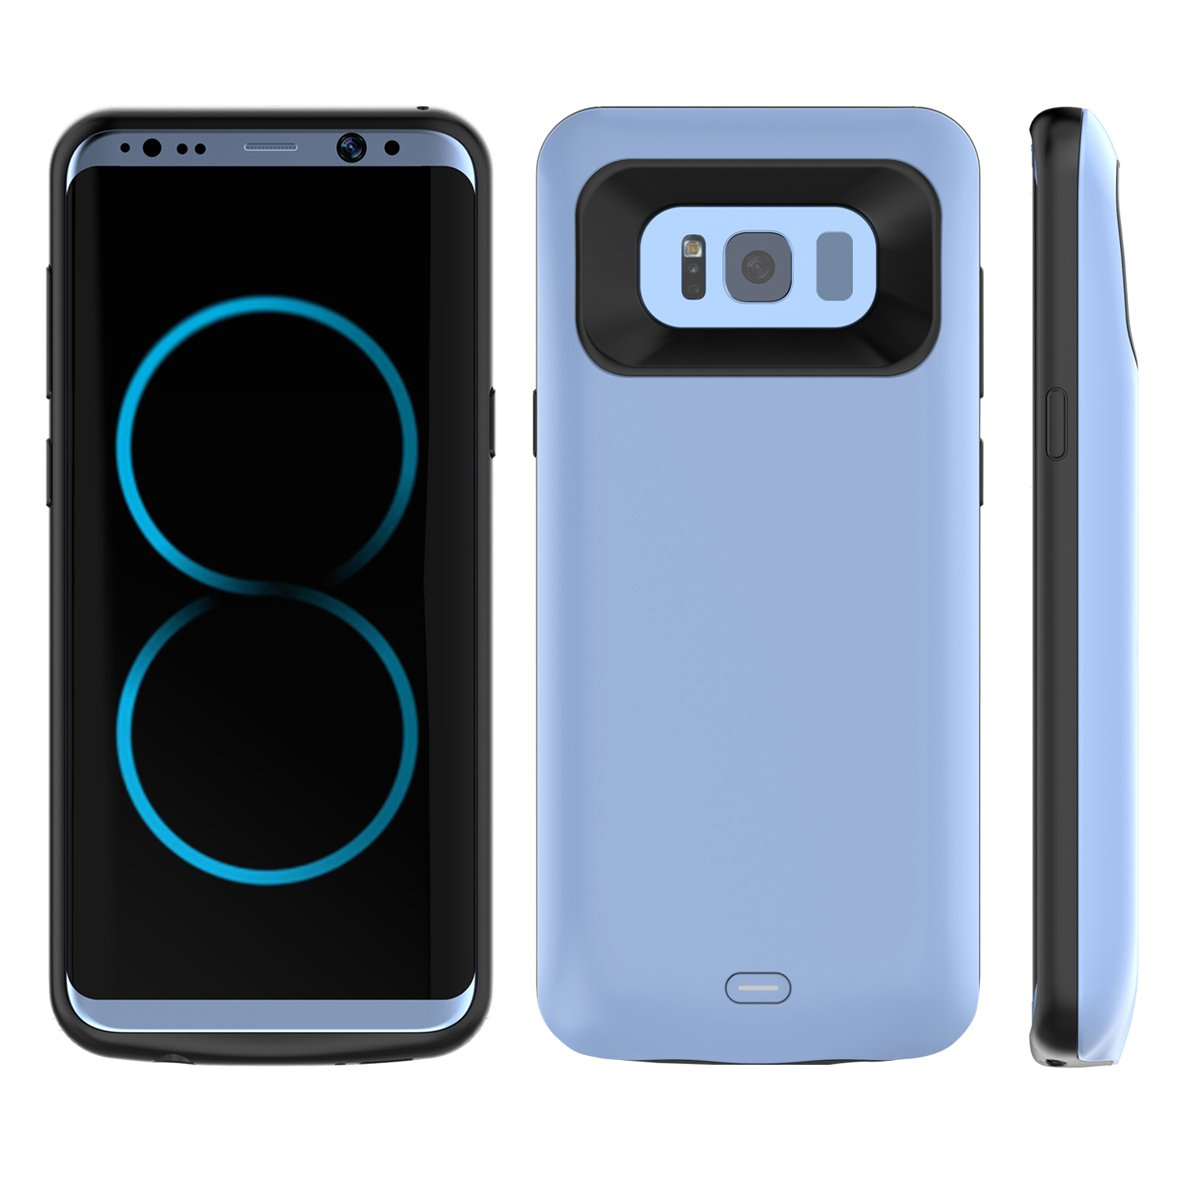 Scheam Samsung Galaxy Note 8 Battery Battery Case- Carry Case Protective Portable Rechargeable Charging Case for Samsung Galaxy Note 8 Battery Bank Power Pack -Blue